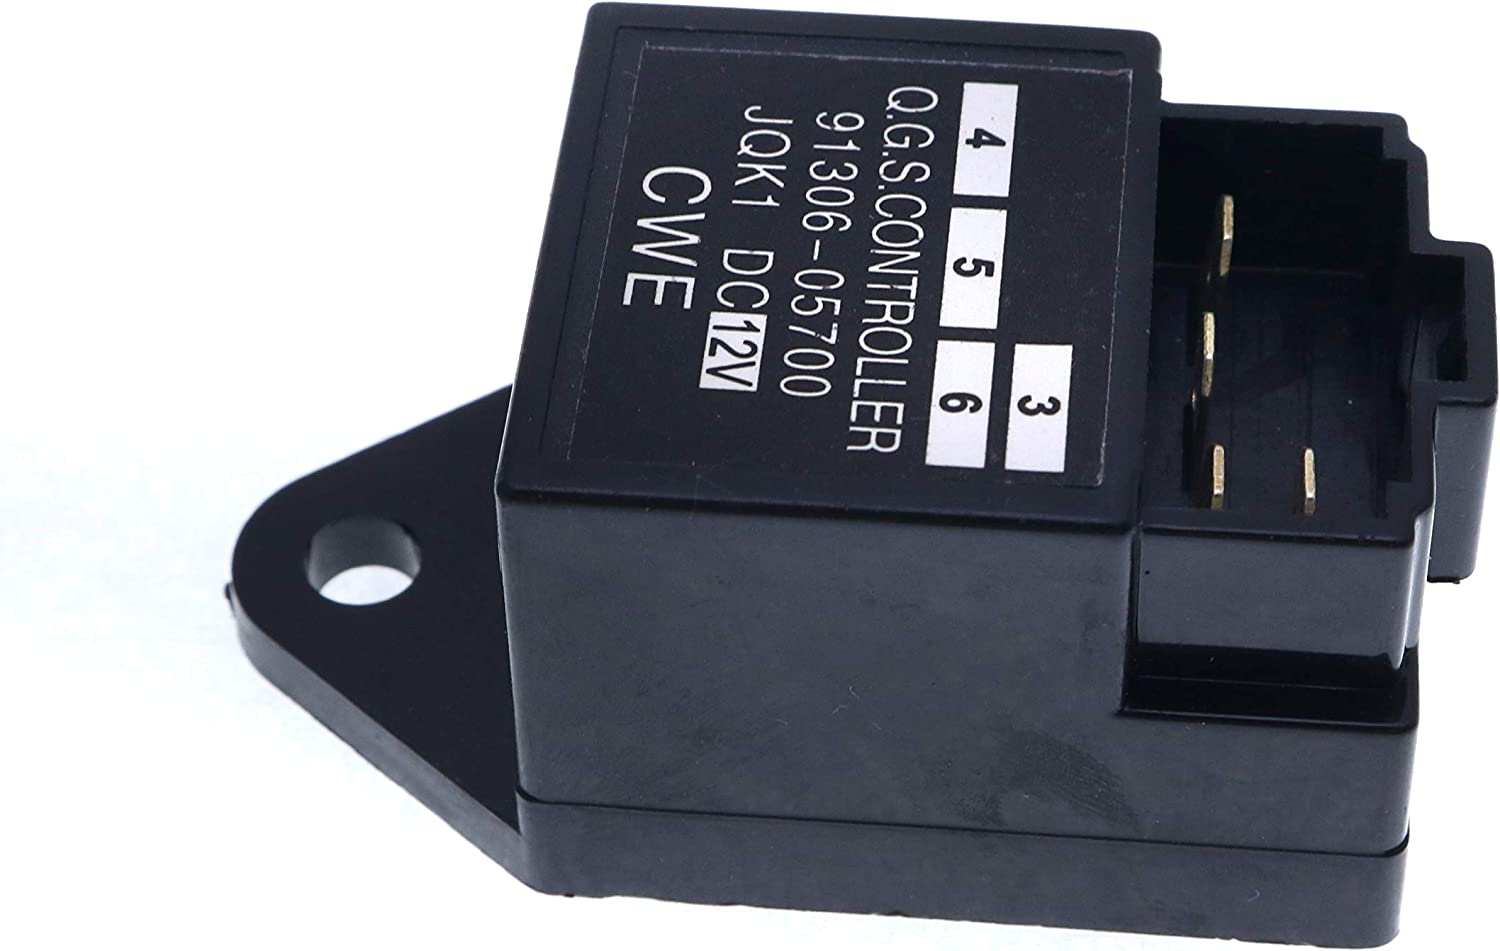 YIHE 12V Timer Lowest price challenge Relay MM431762 Mitsubishi Lamptimer Max 40% OFF S85NR for NGK